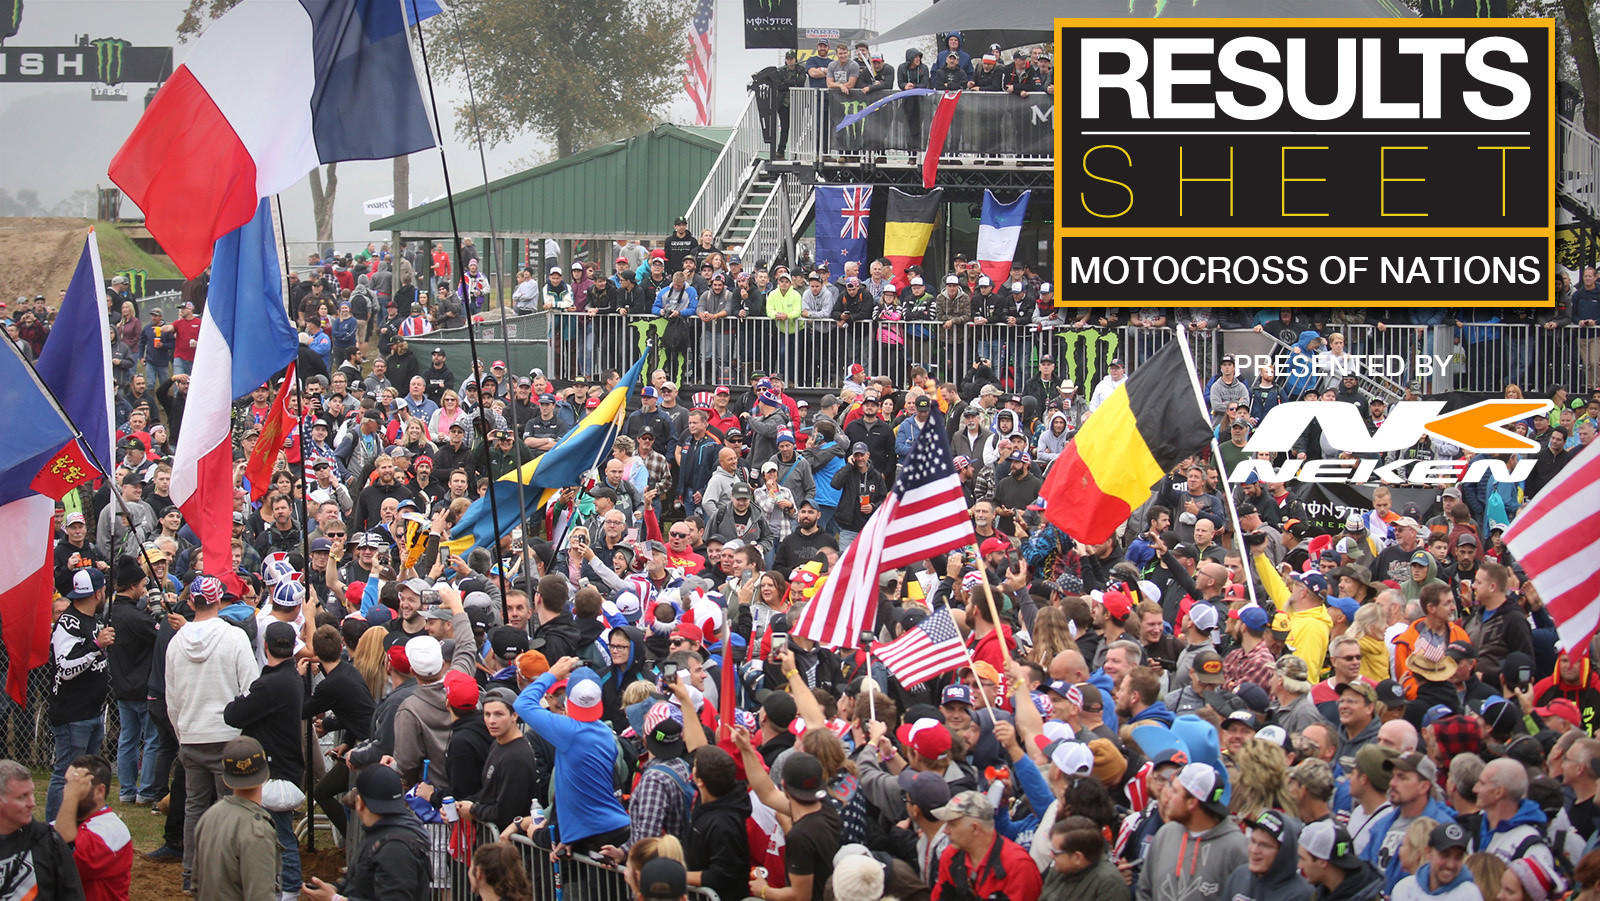 Results Sheet: 2018 Motocross of Nations